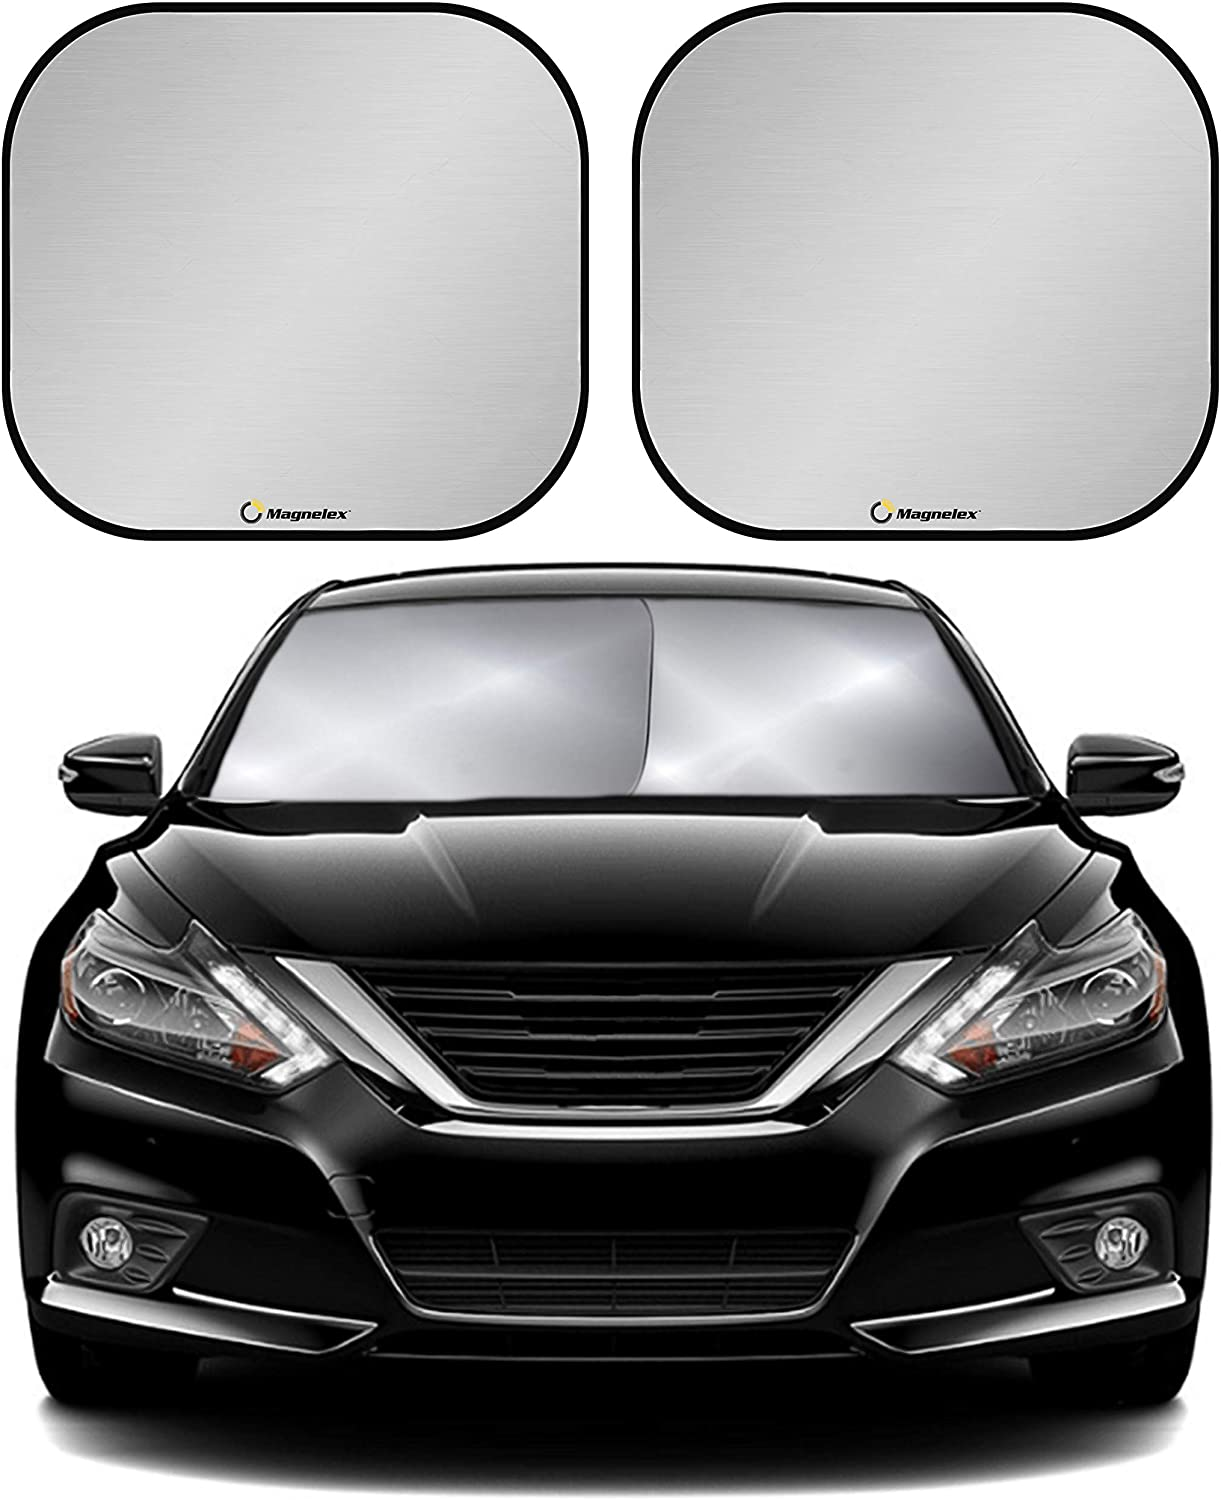 Windshield Sun Shade with Bonus 2 Pack Cling Sunshades. 210T Reflective Fabric Blocks Sun and Keeps Your Vehicle Cool. Foldable Sun Shield for Car Windshield. Windshield Sunshade (Universal Fit)